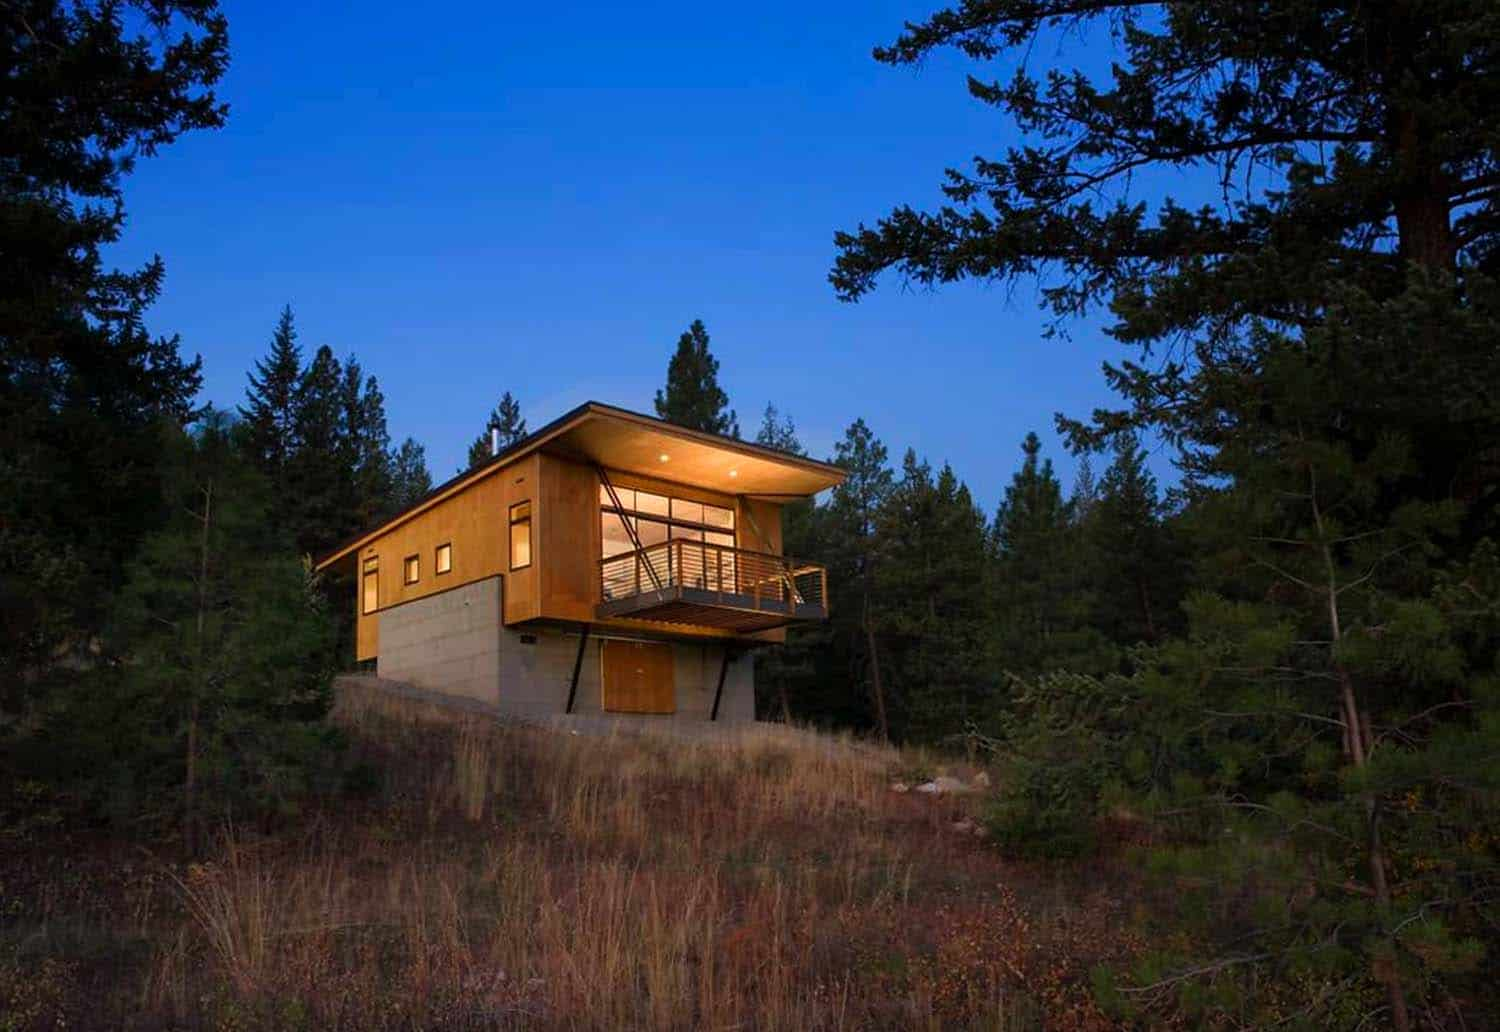 Roof Design Ideas: A Budget-friendly Cabin Surrounded By Forest In Methow Valley